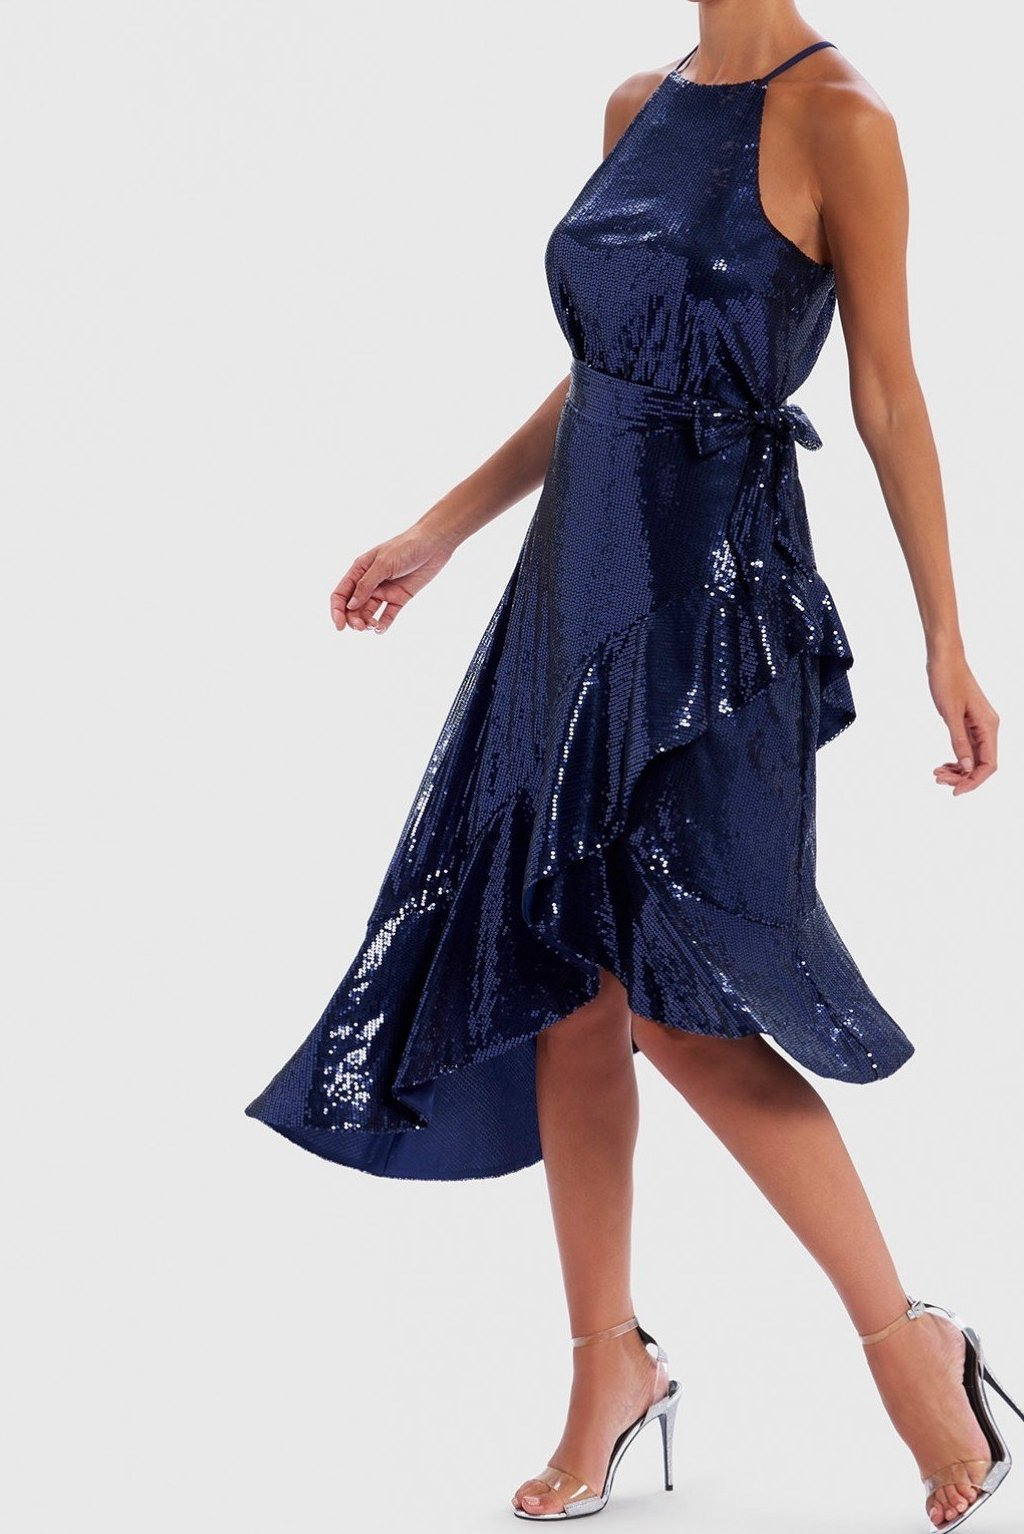 FOREVER UNIQUE NAVY SEQUIN HALTER NECK MIDI DRESS